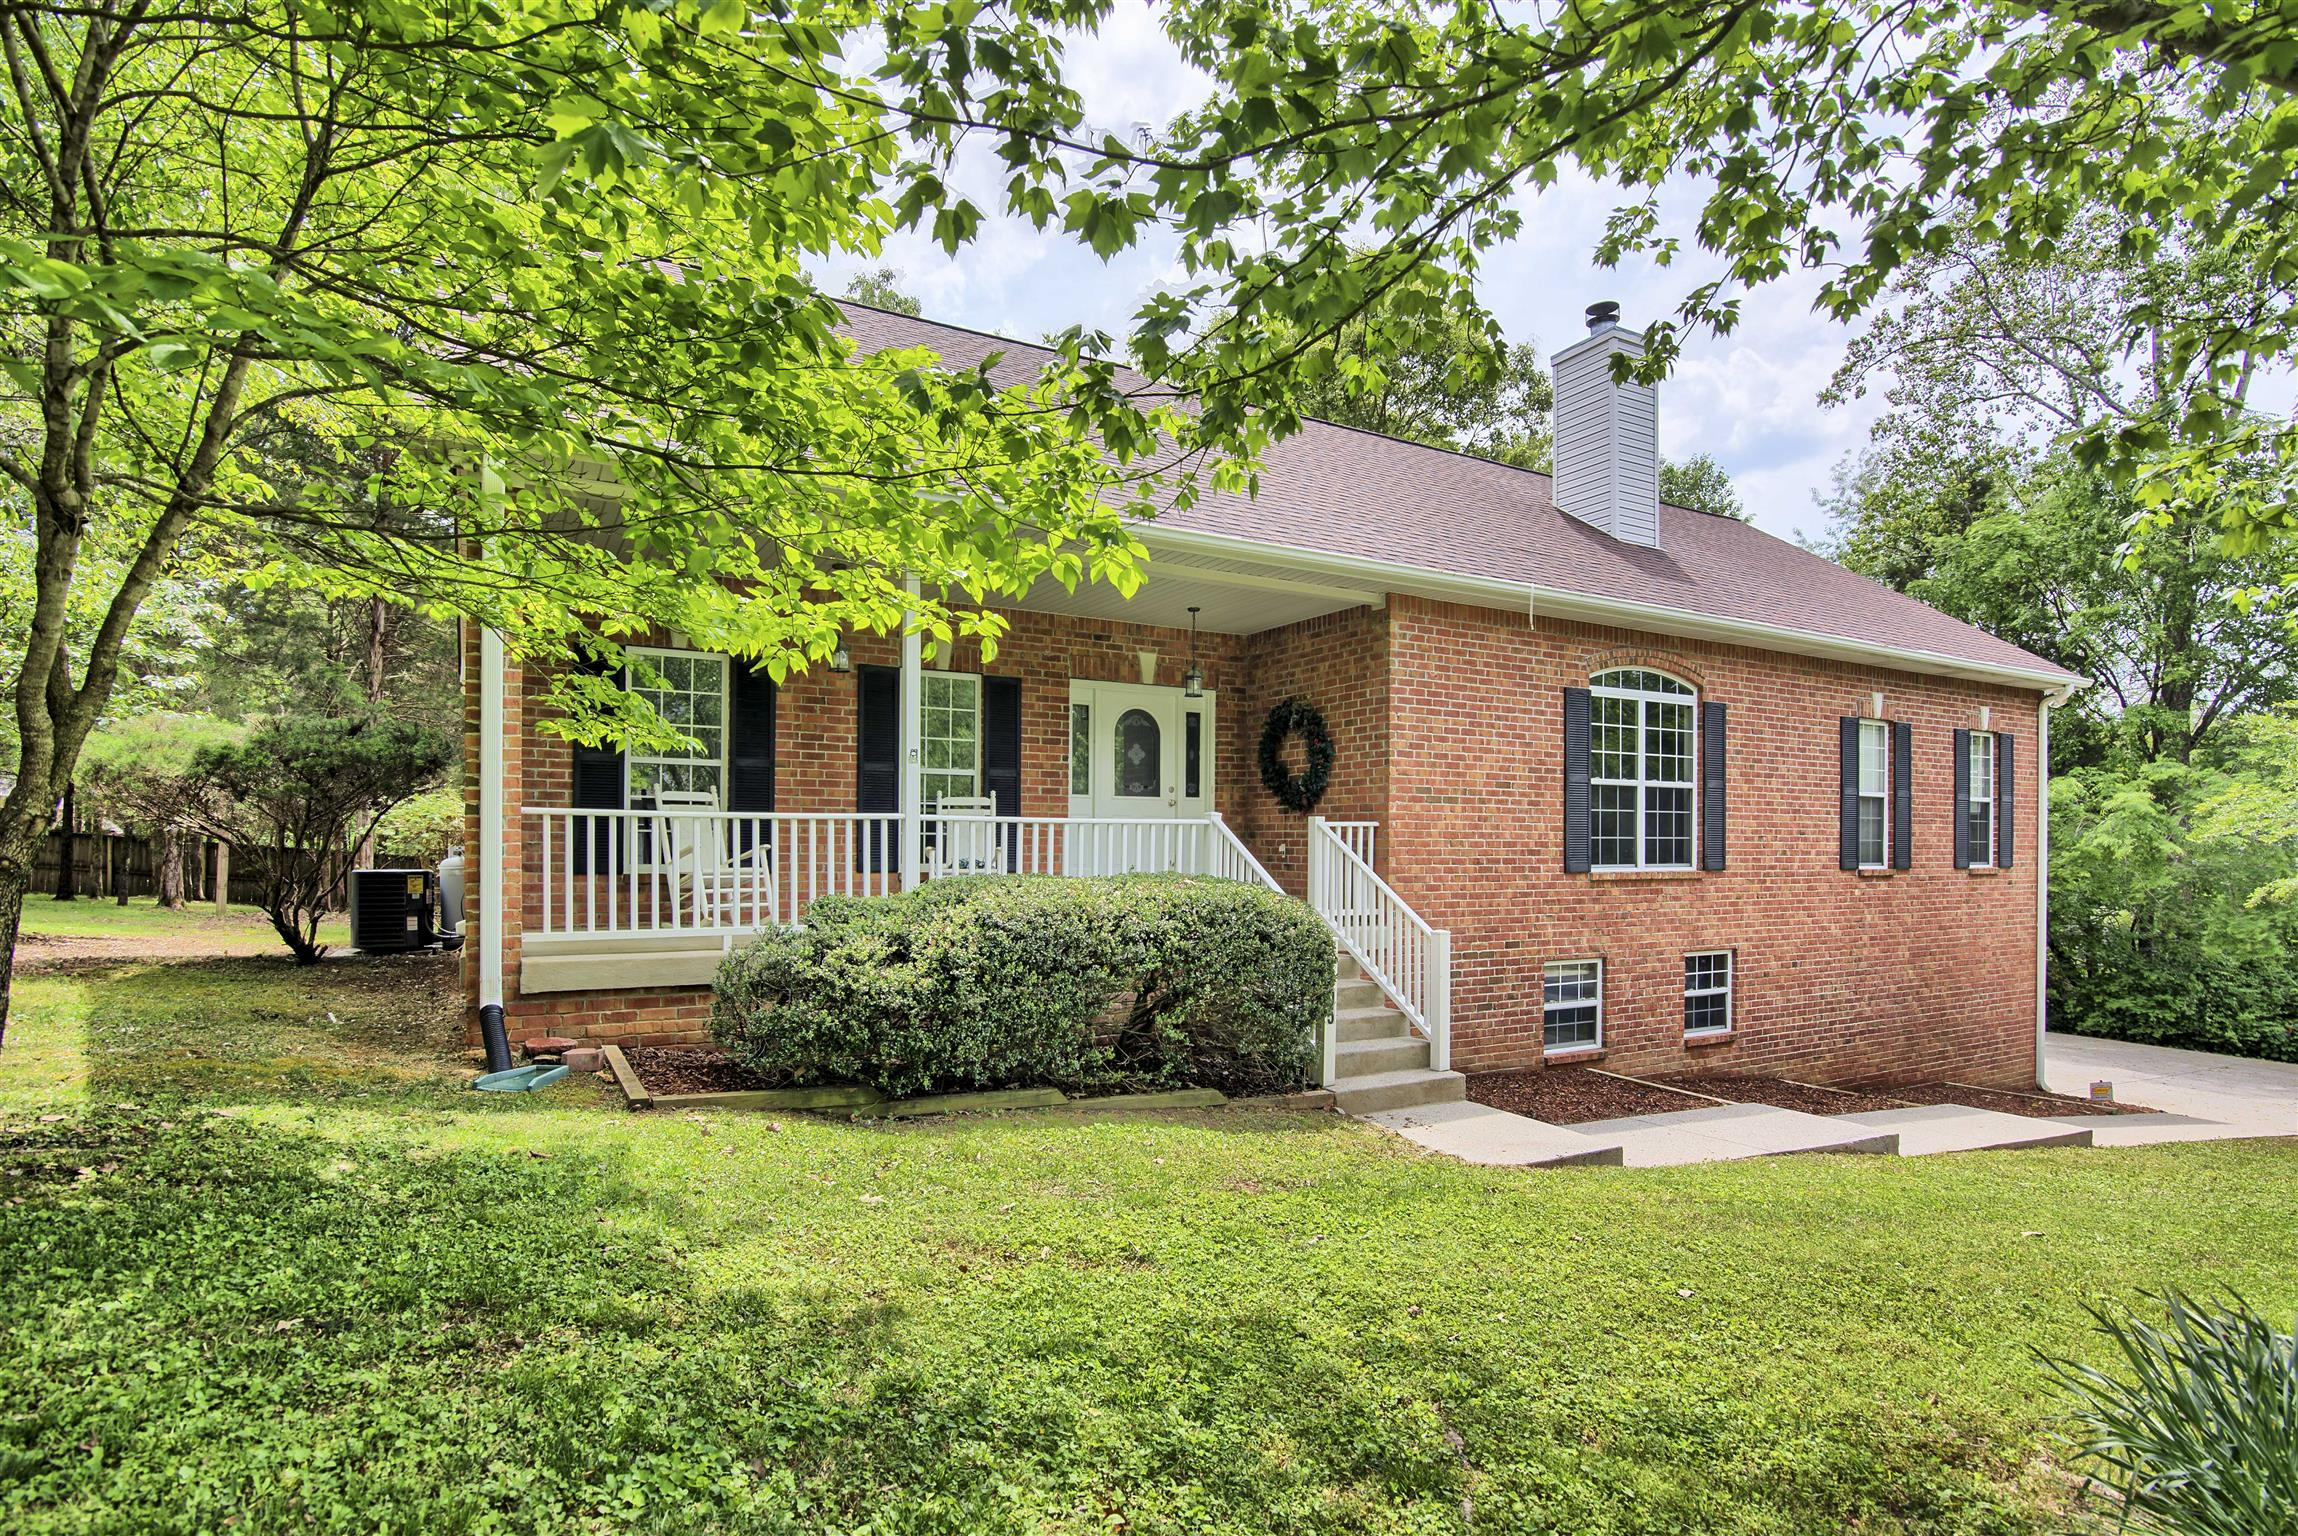 7905 Pinecrest Ln, Fairview in Williamson County County, TN 37062 Home for Sale